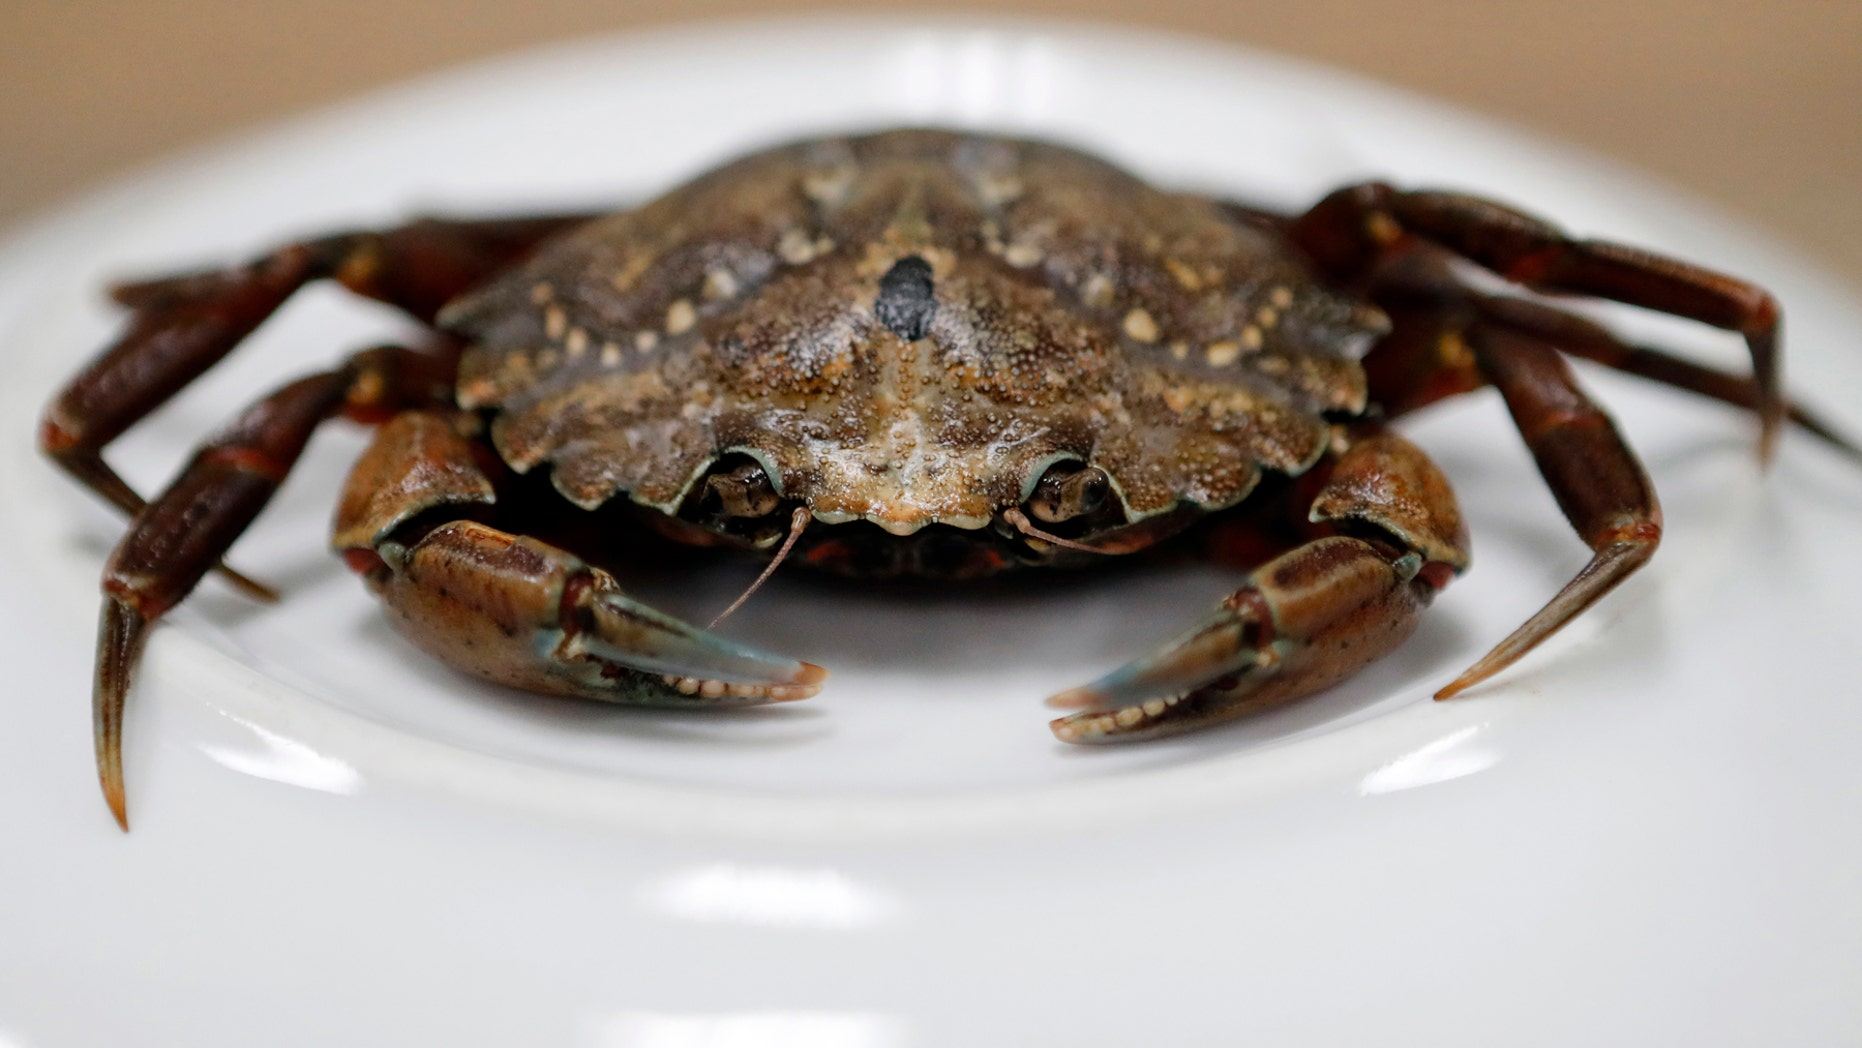 FILE - This June 6, 2018, file photo shows a green crab in Portland, Maine. A University of New England researcher said green crabs migrating from Nova Scotia are ornerier and angrier than their Gulf of Maine cousins. (AP Photos/Robert F. Bukaty, File)